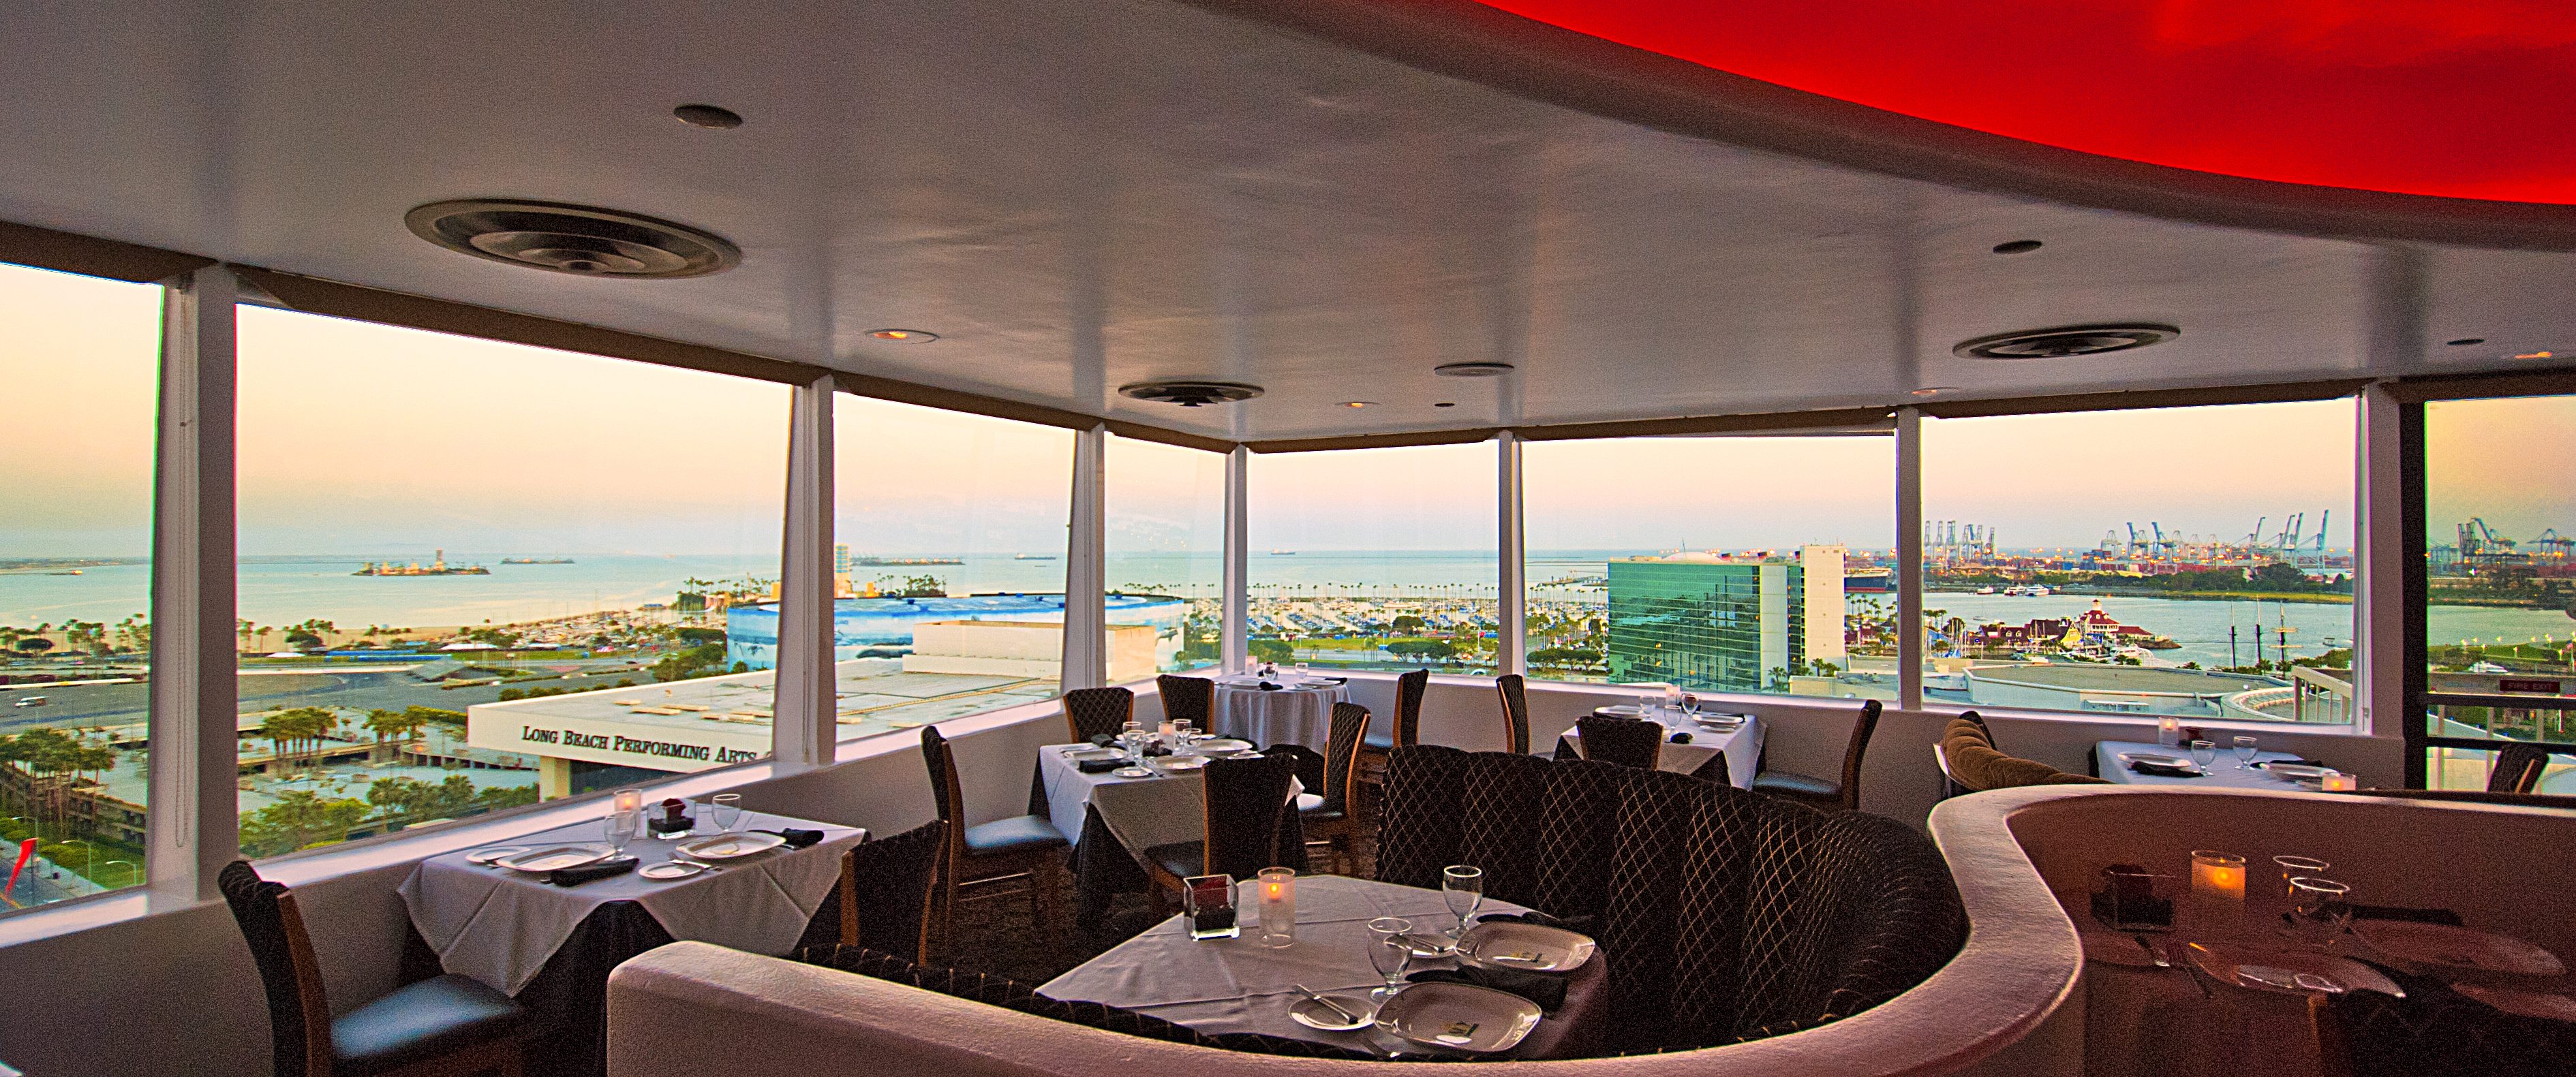 Long Beach S Cielo And Historic Sky Room To Close For A Two Year Remodel Eater La